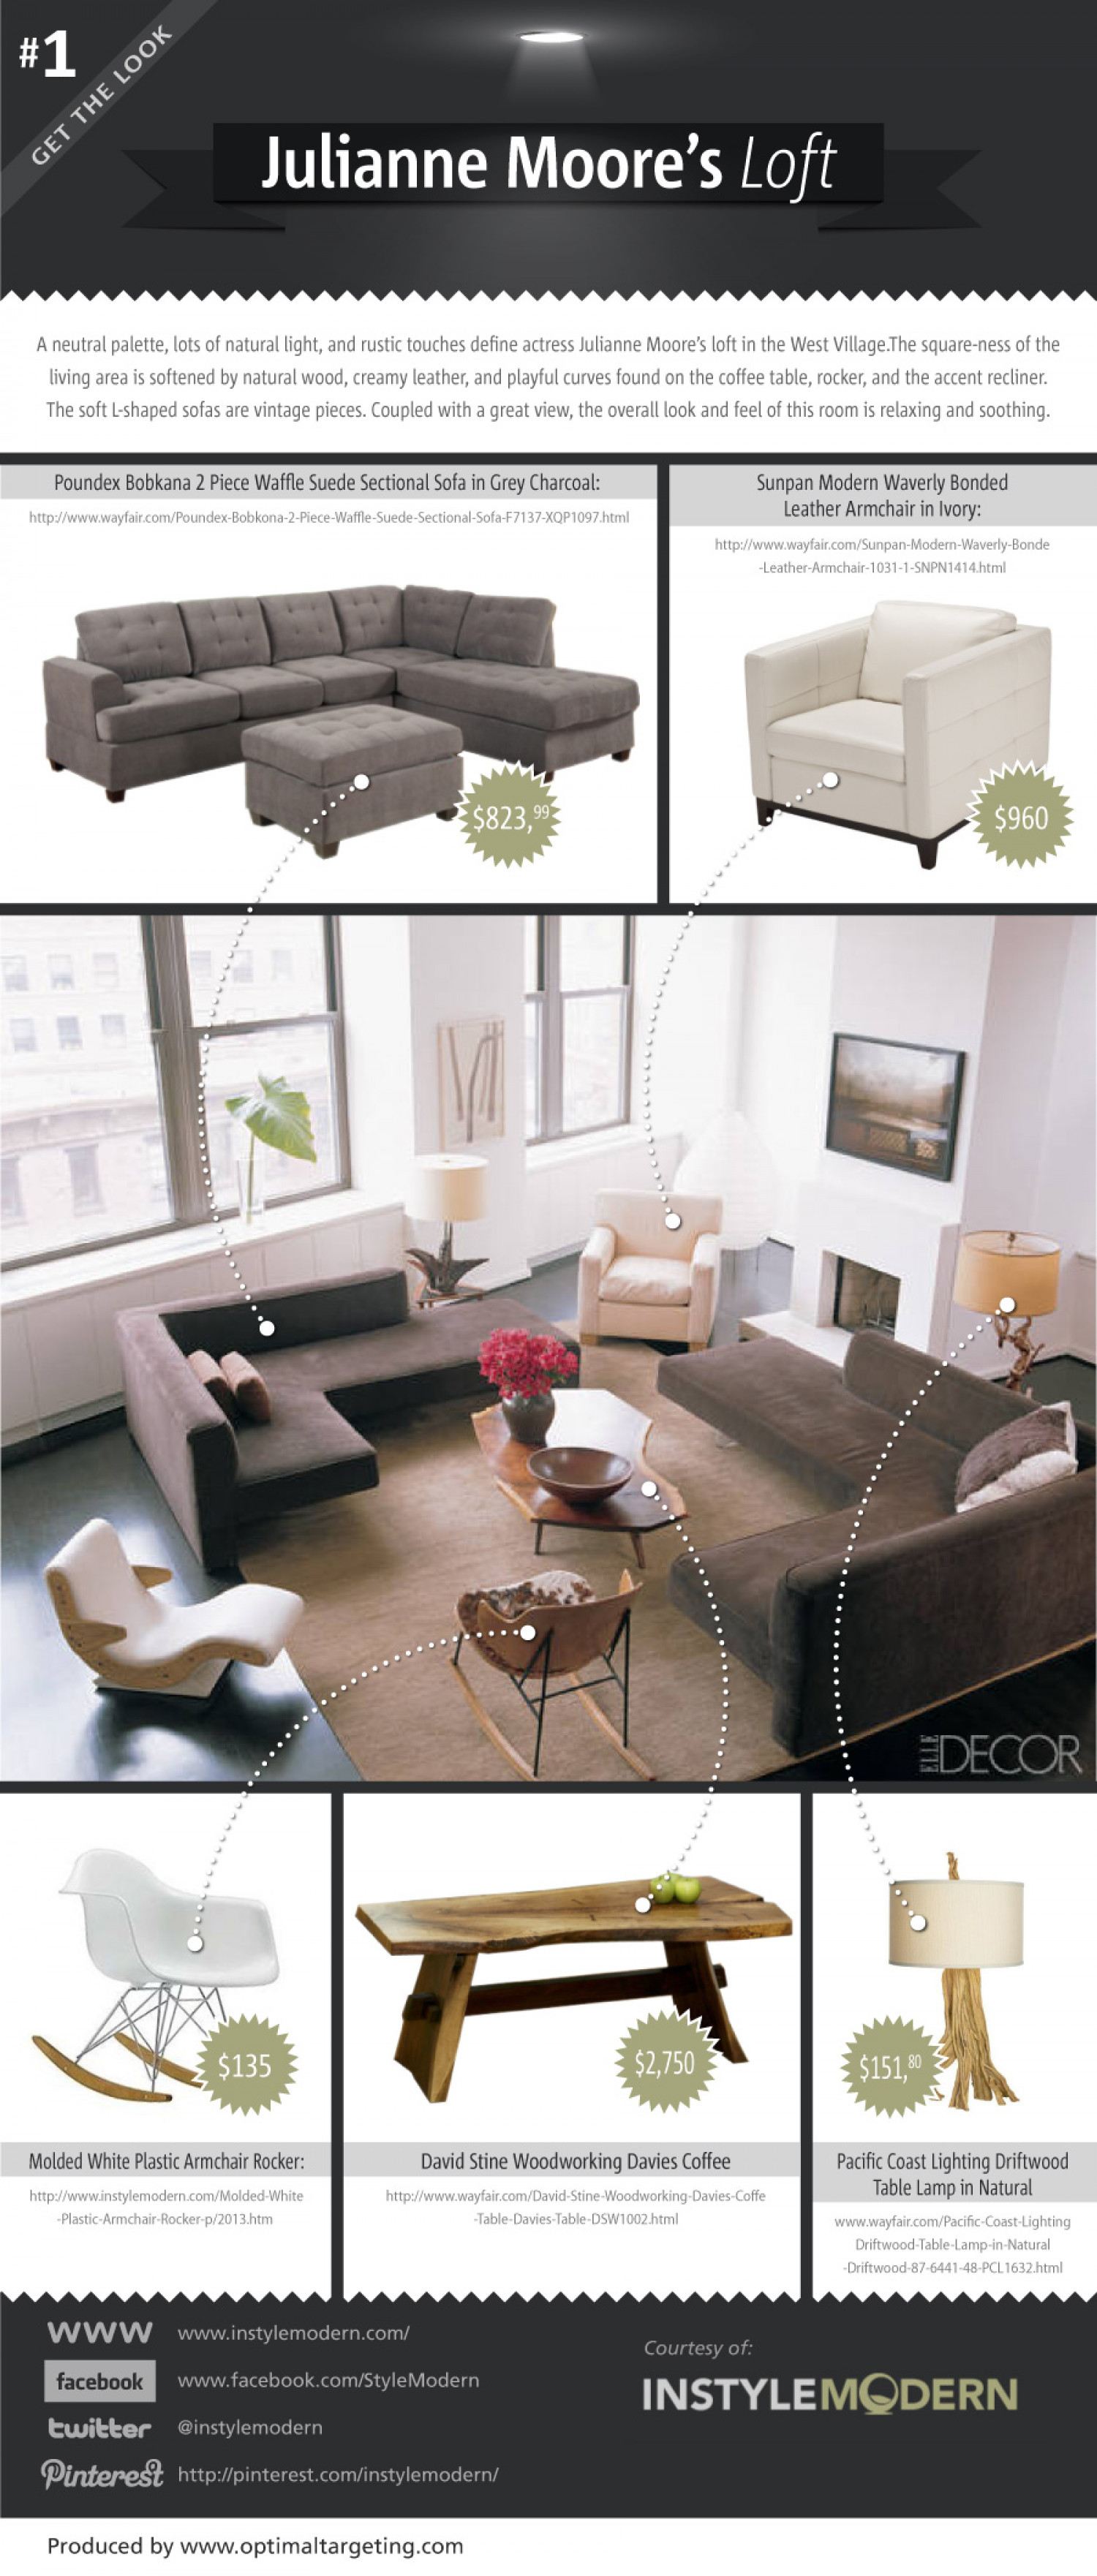 Get The Look #1: Julianne Moore's Loft Infographic